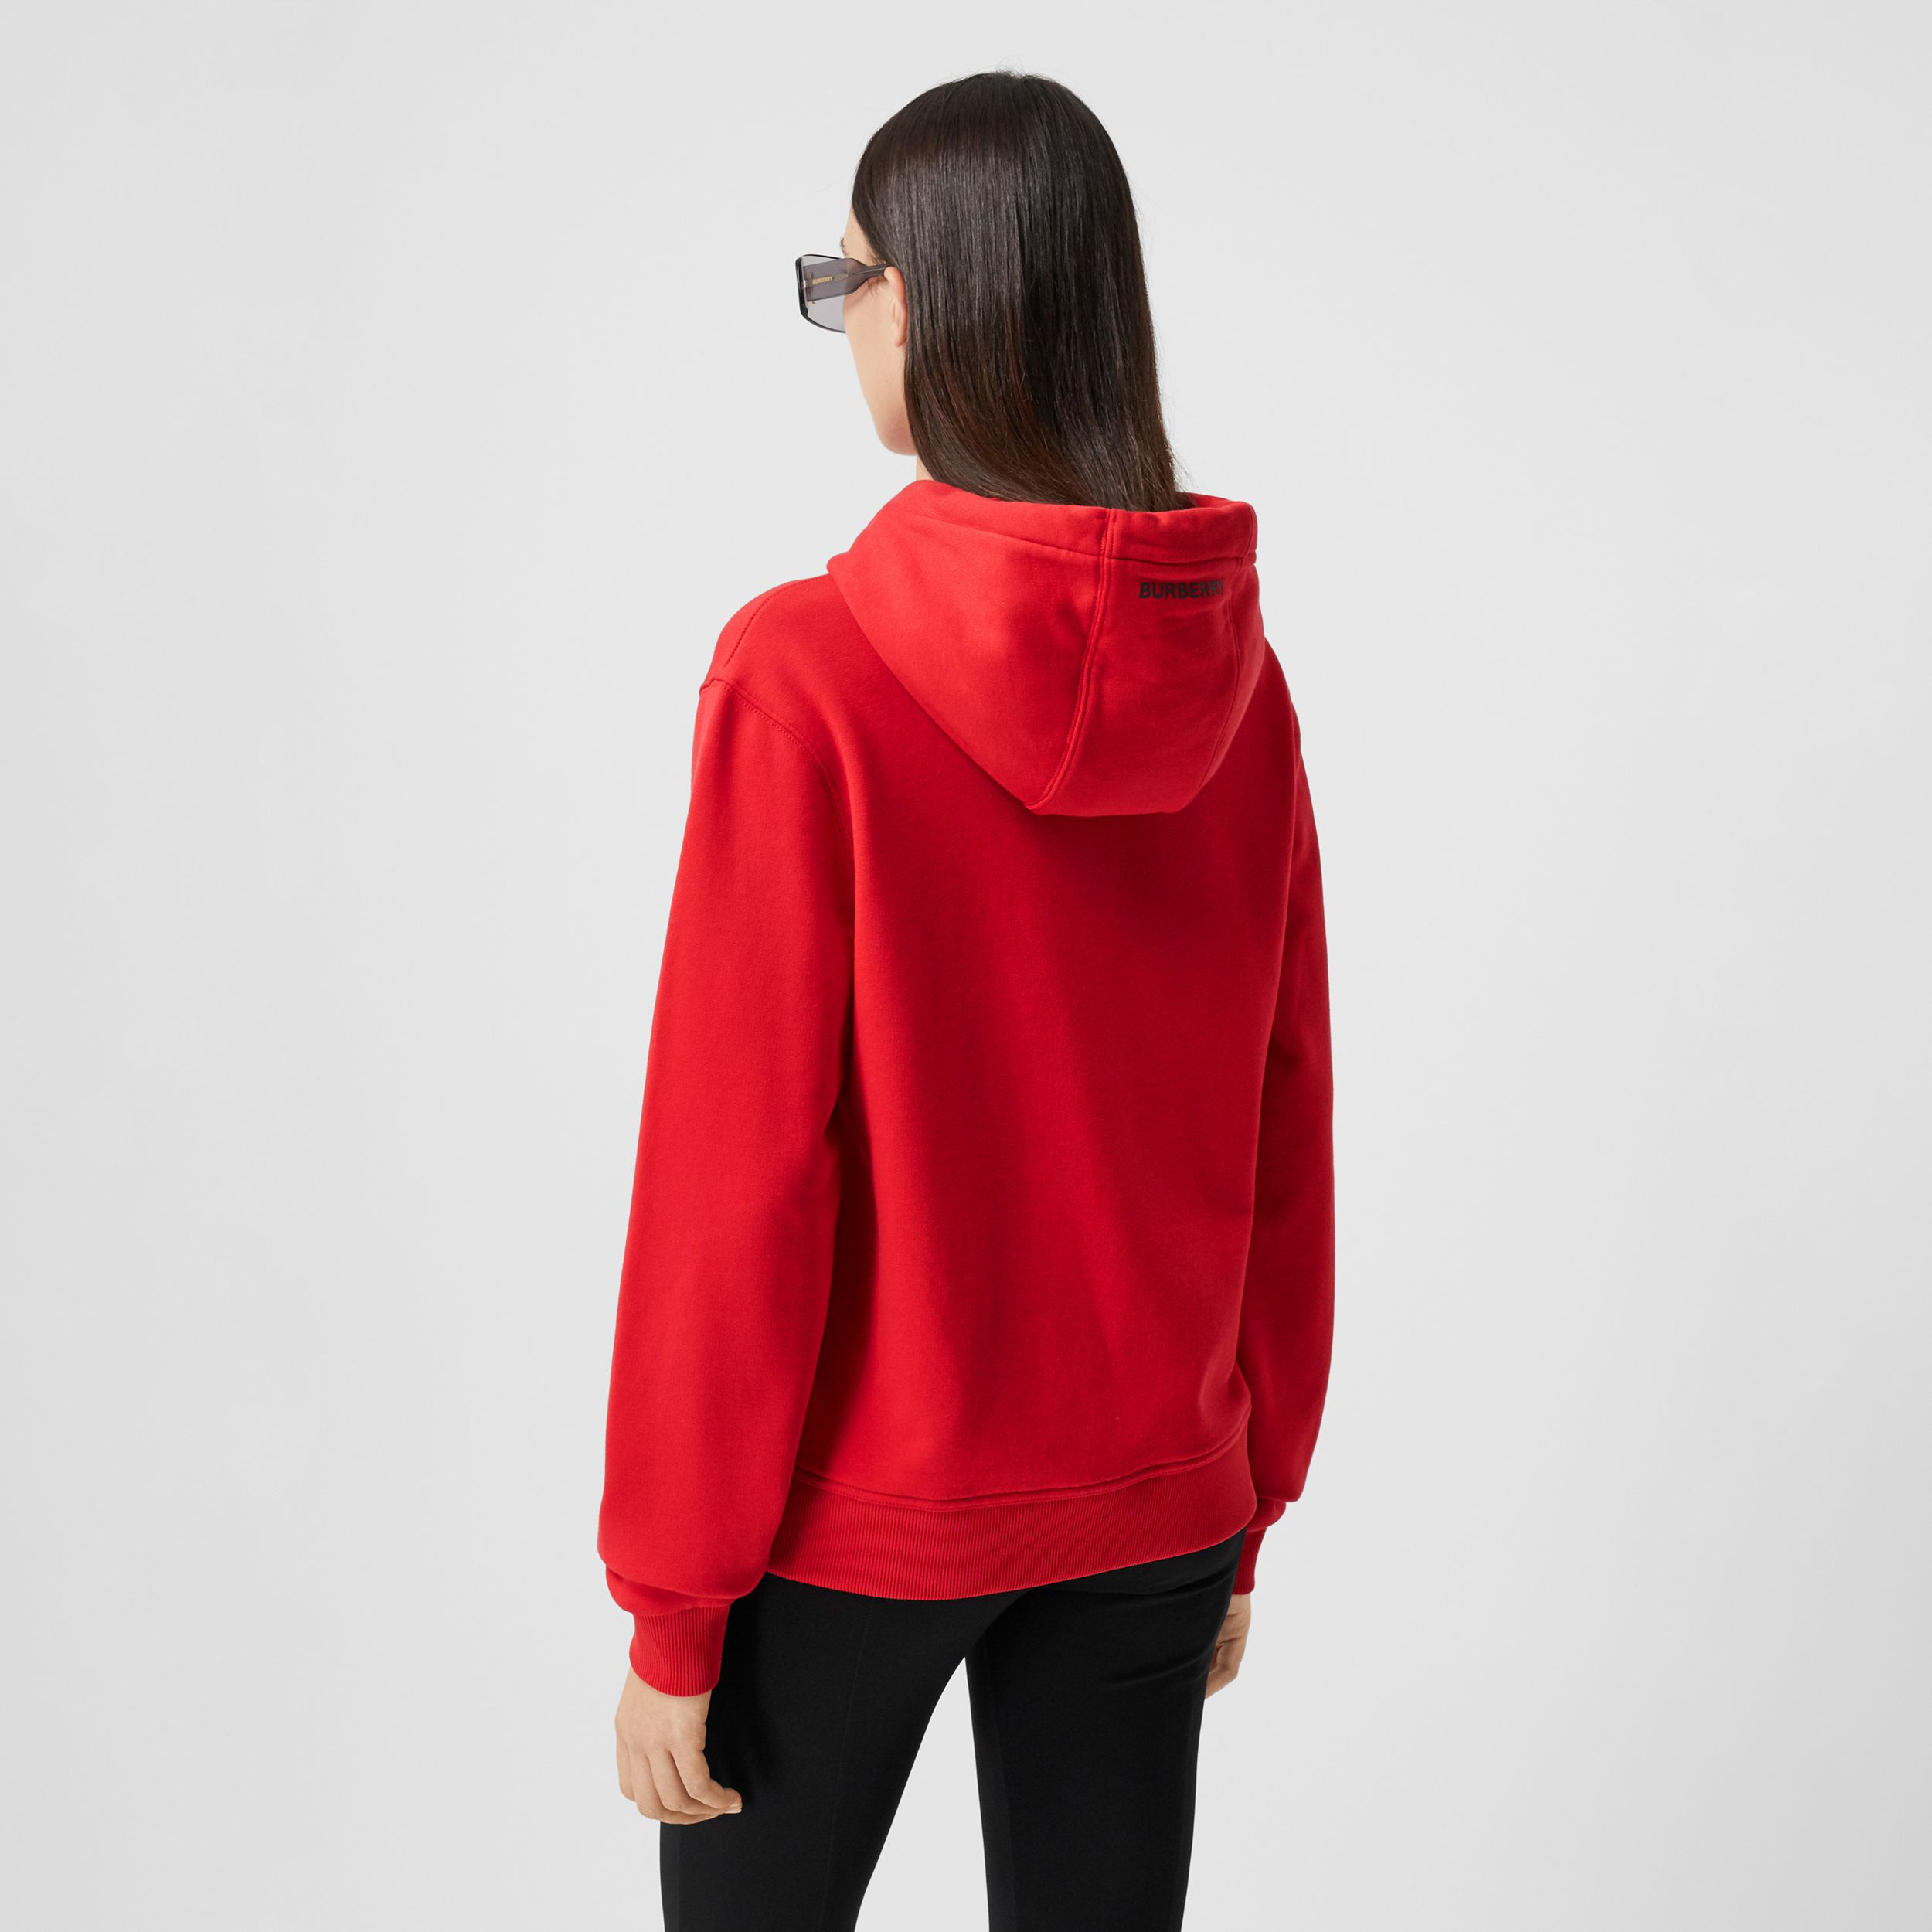 Slogan Print Cotton Oversized Hoodie in Bright Red - Women | Burberry - 3